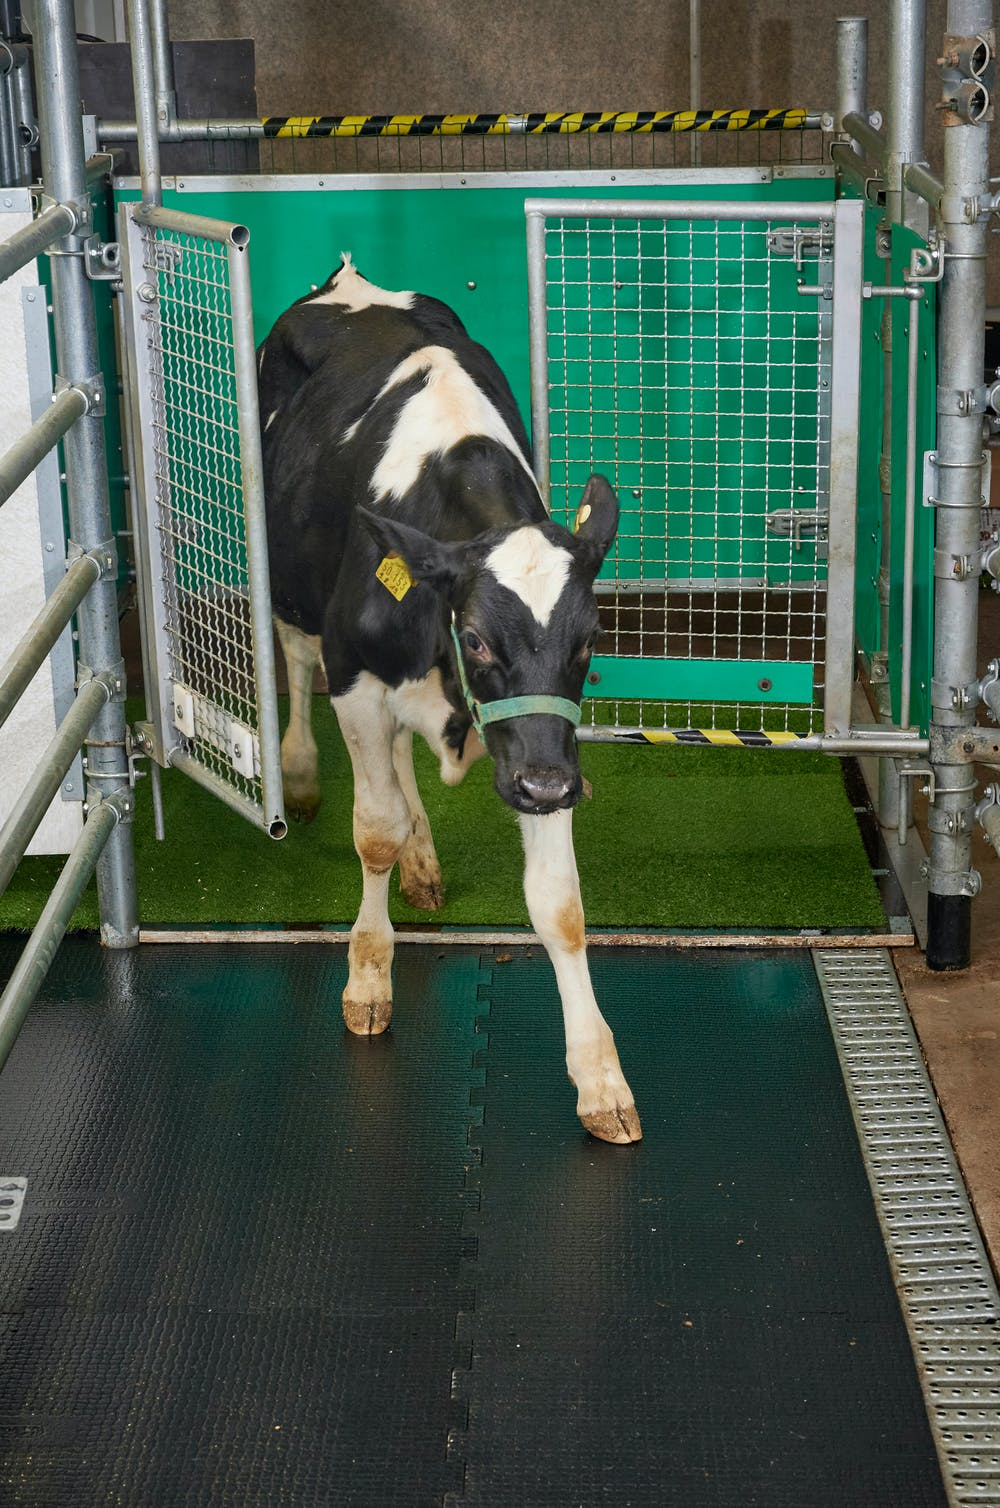 The calves exited the pen through a gate. (Research Institute for Farm Animal Biology)